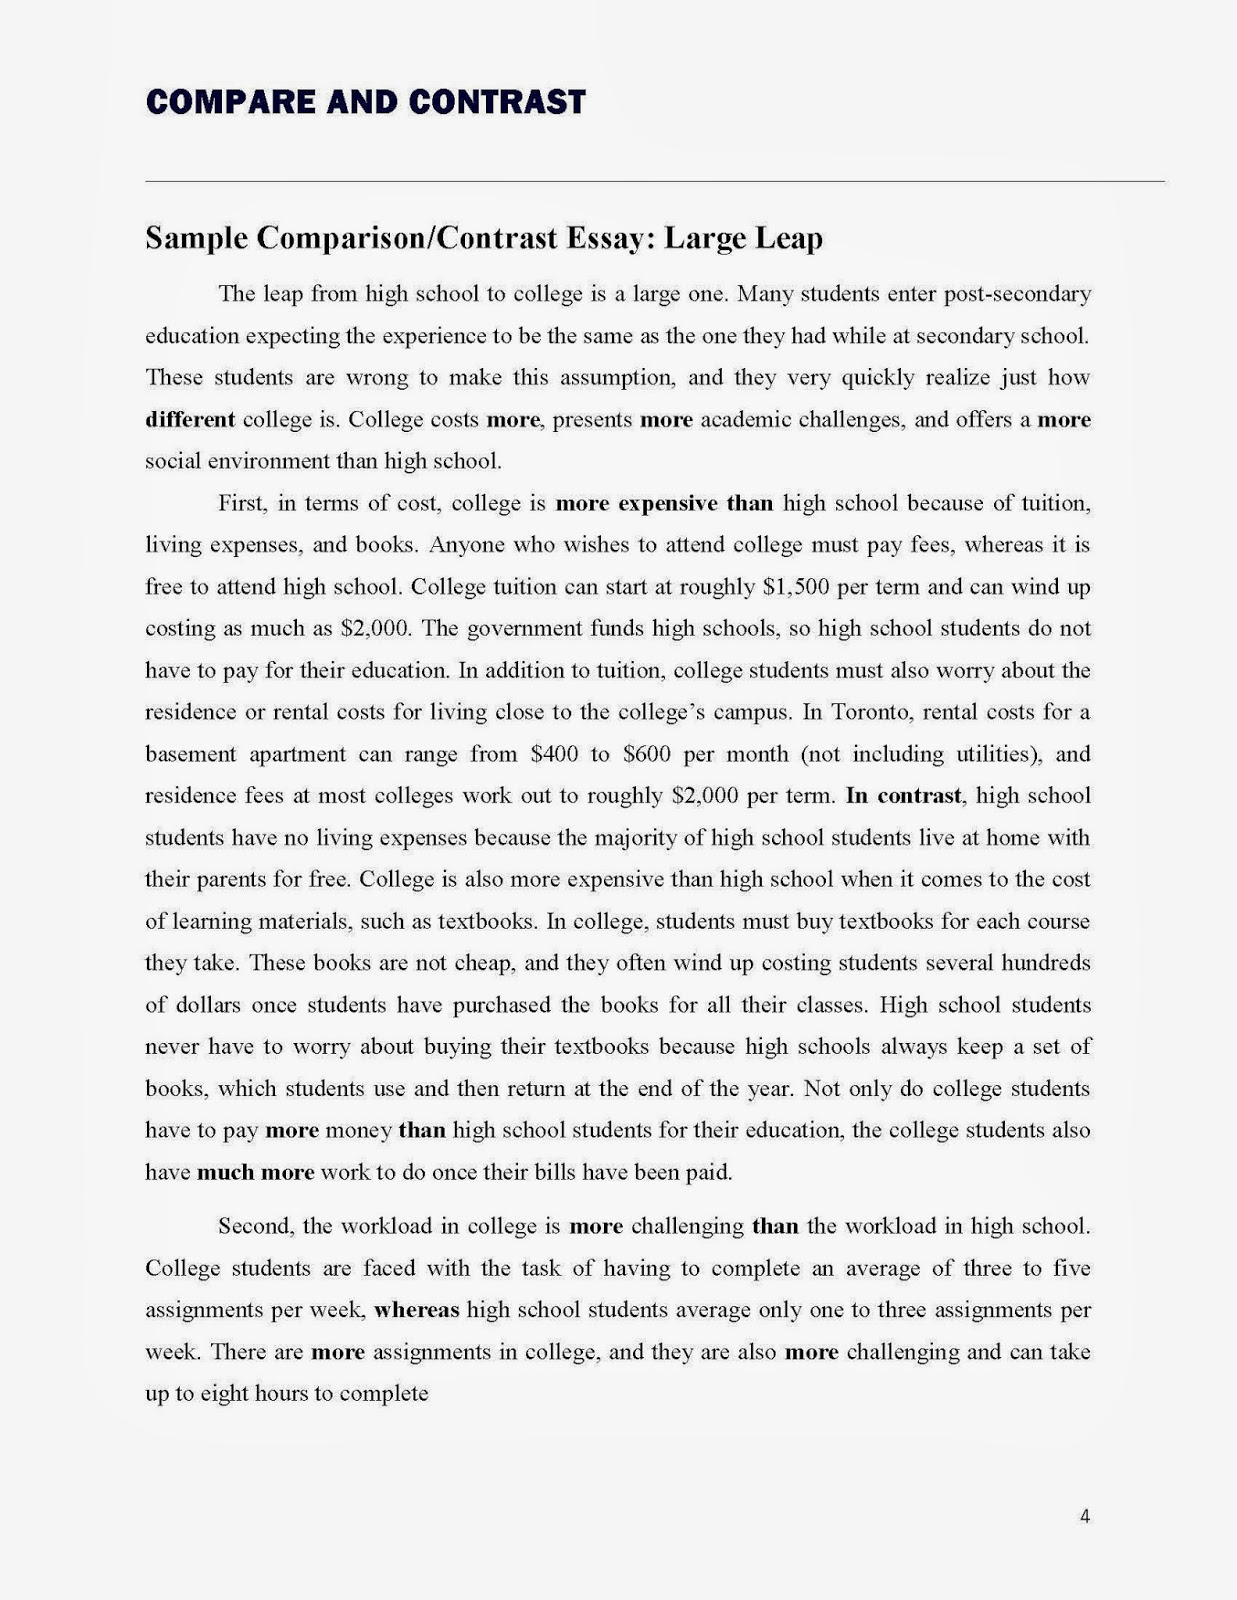 005 Compare And Contrast Essay Introduction Example Compare2band2bcontrast2bessay Page 4 Stirring Sample Full